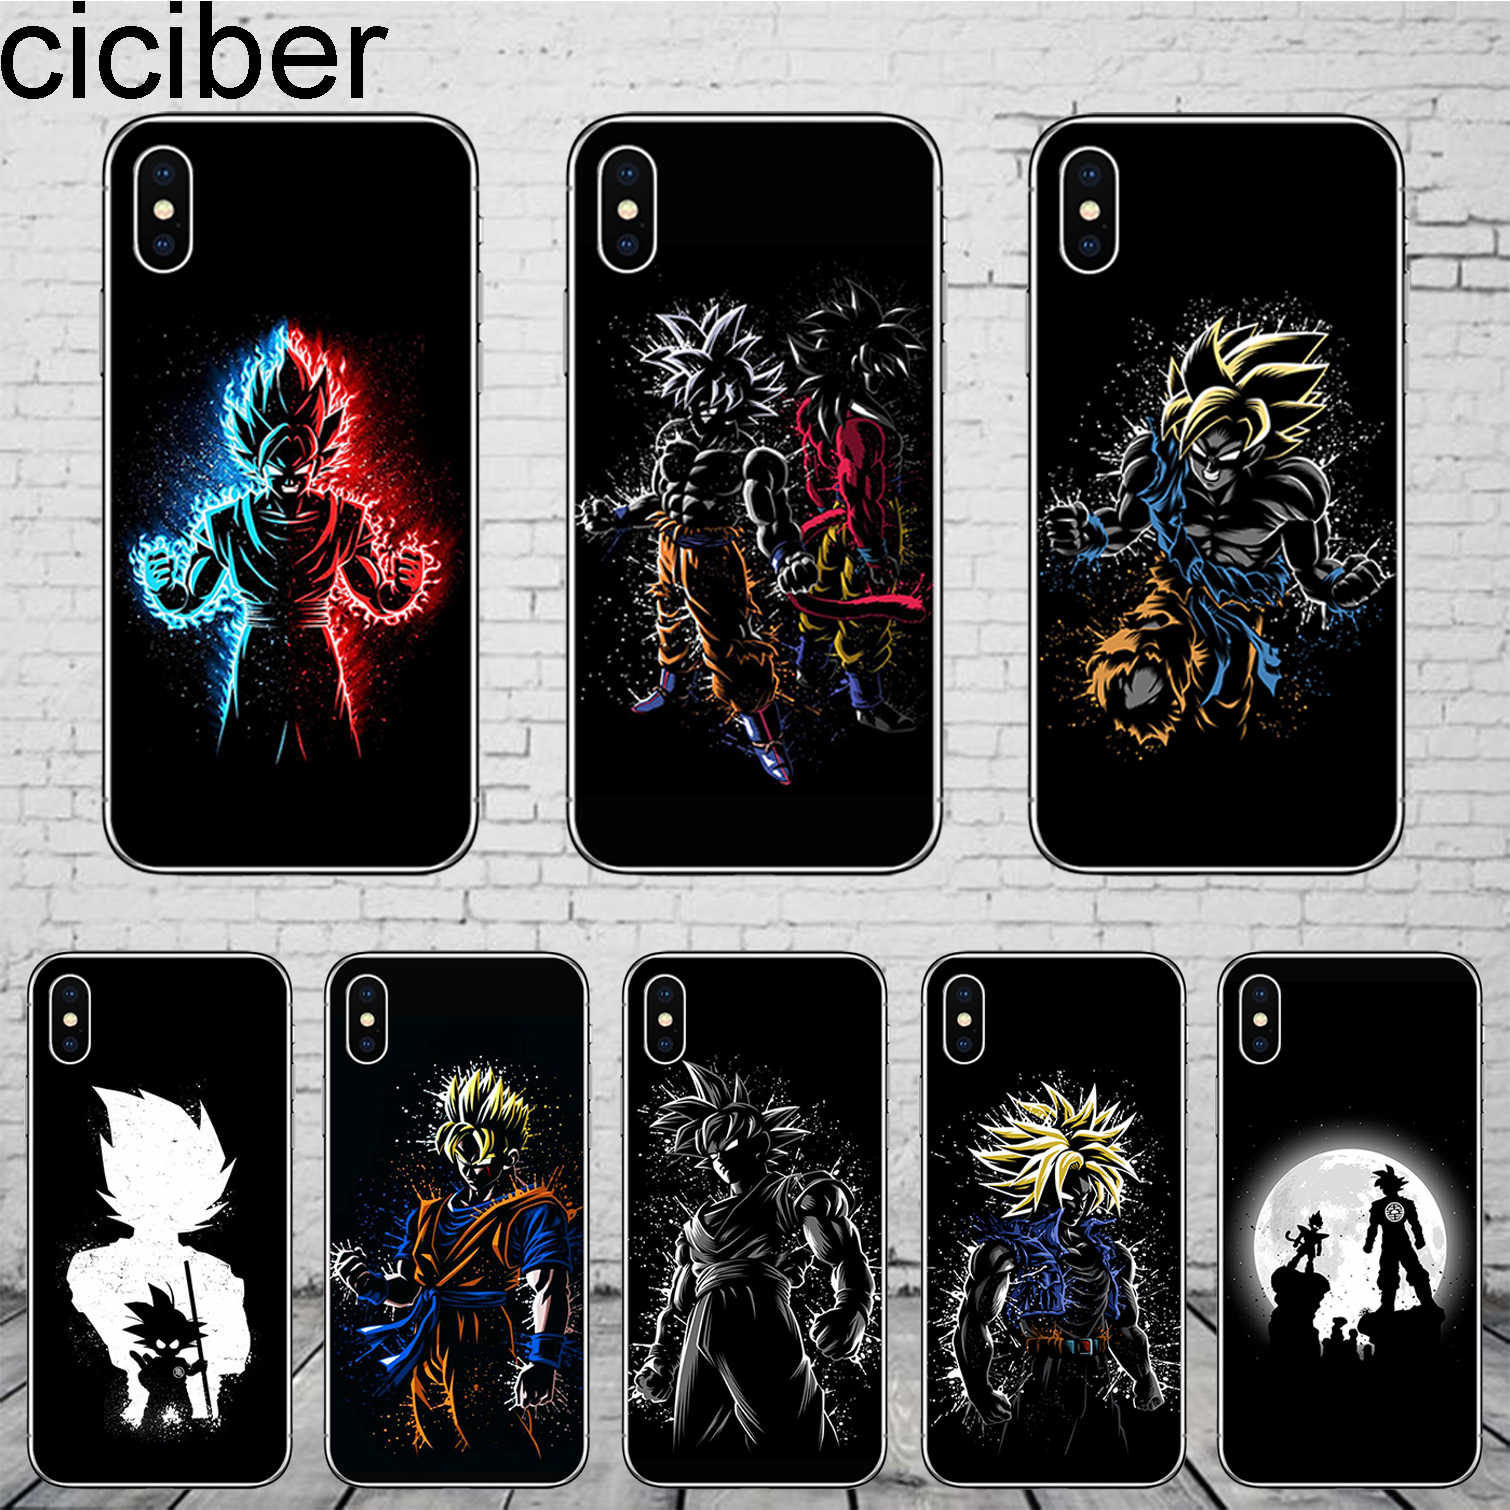 Ciciber Dragon Ball Z Goku Cho Iphone 11 Pro Max Coque Cho Iphone X XR XS Max 8 7 6 6 S Plus 5 5S SE Vỏ Mềm TPU